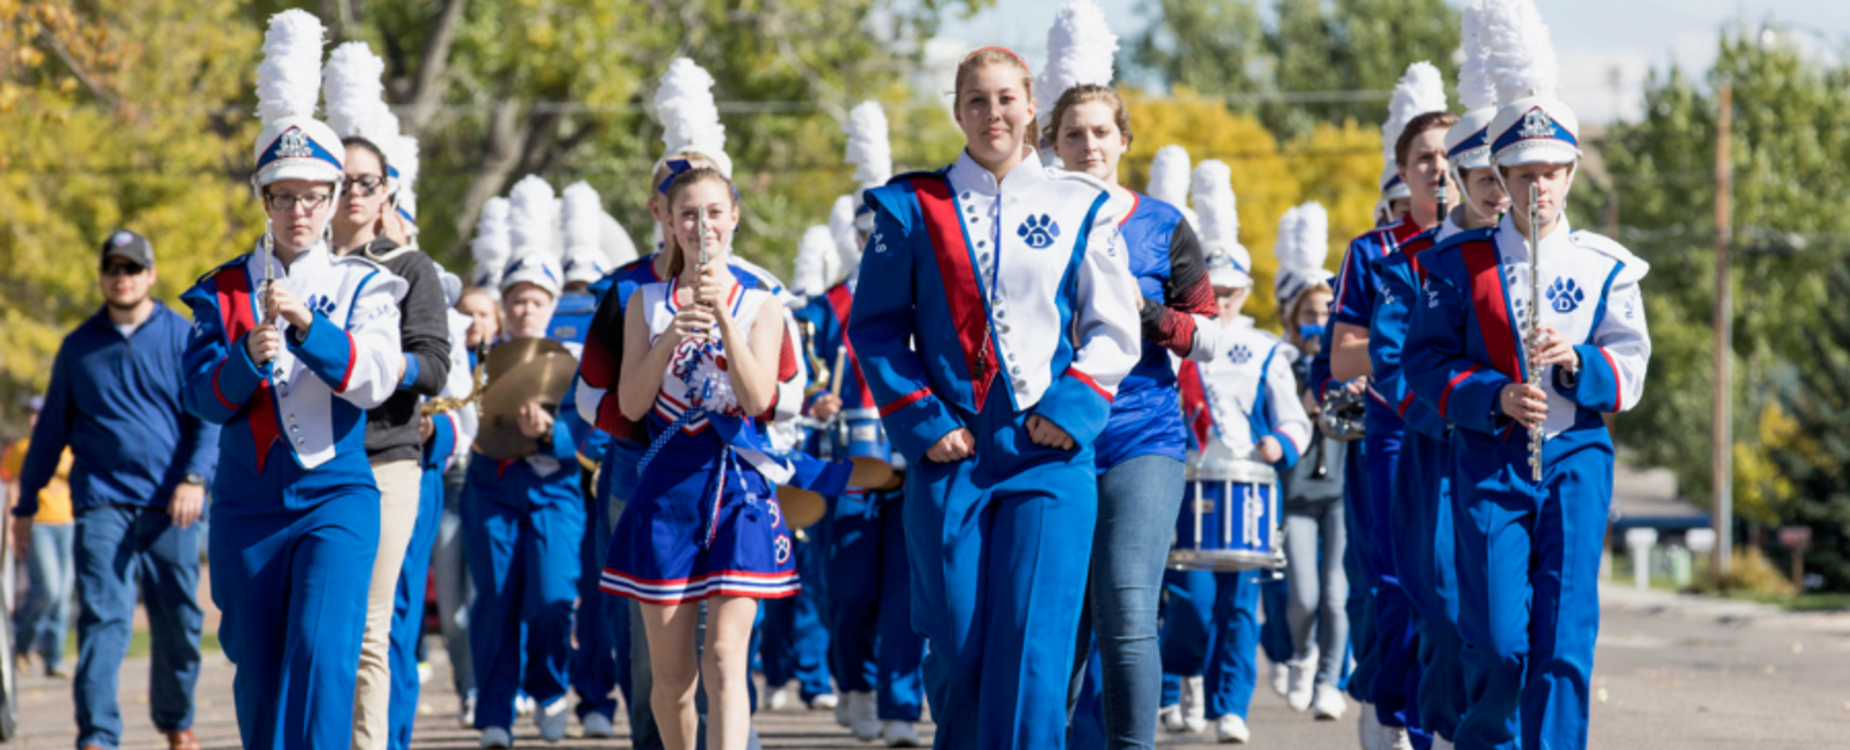 2017 Homecoming Parade - DHS Marching Band